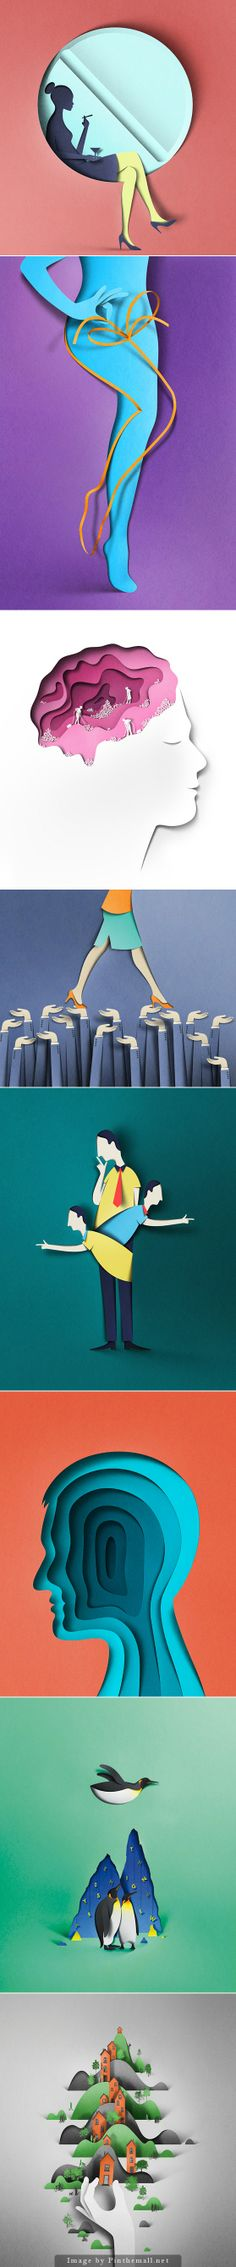 http://www.behance.net/gallery/16452435/Editorial-illustrations... - a grouped images picture - Pin Them All